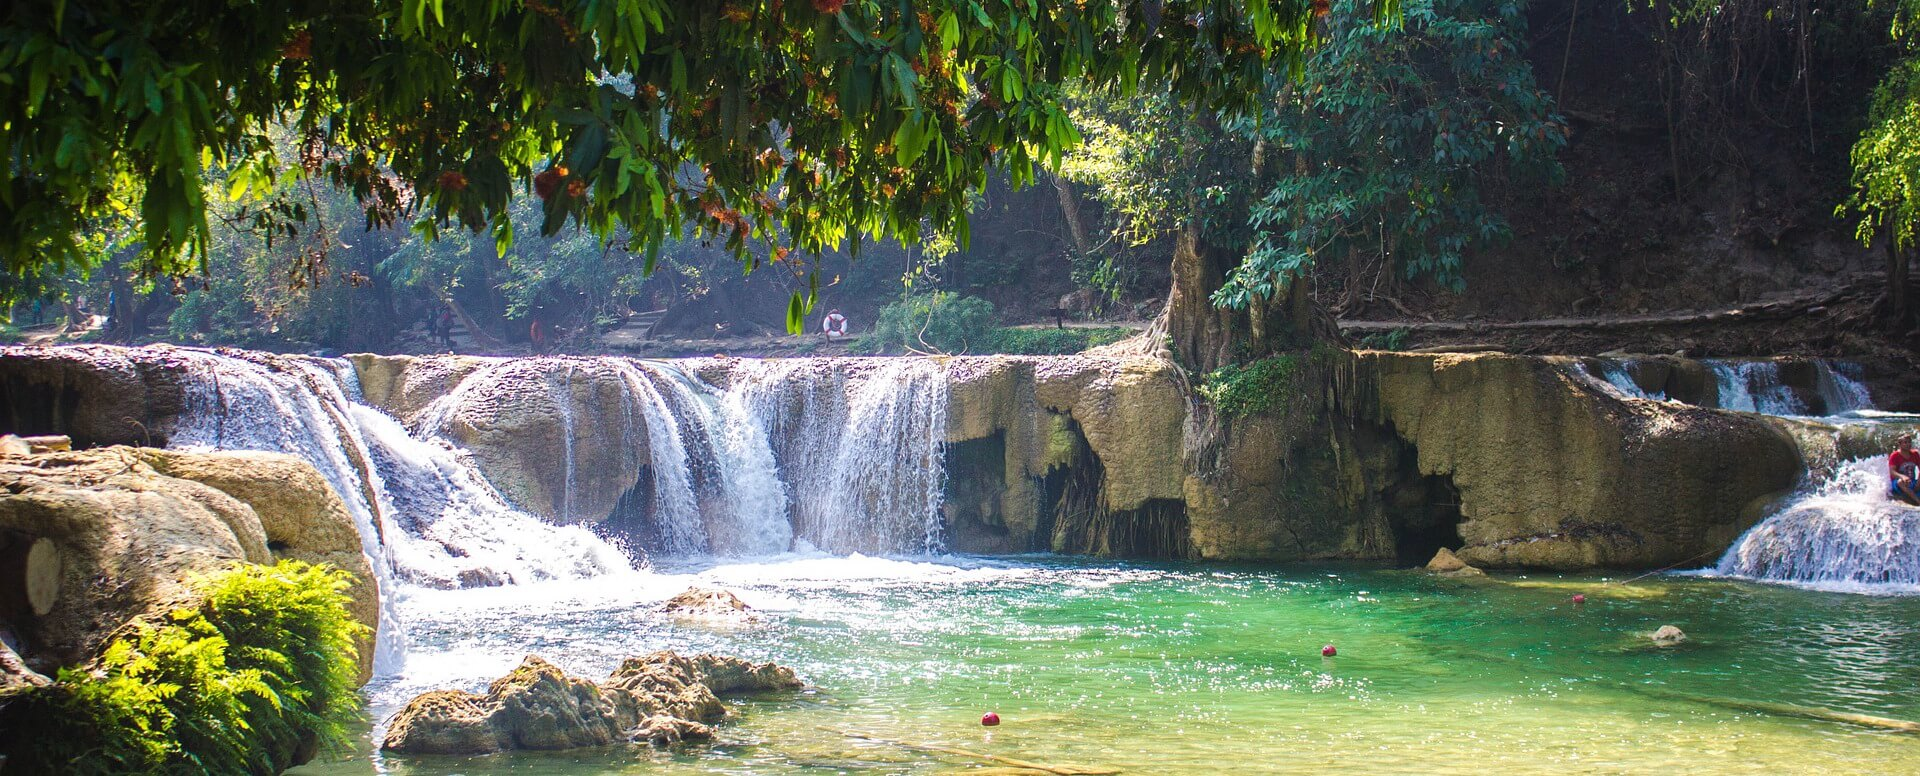 2. Rest and forget about all your worries in Pai - Thailand